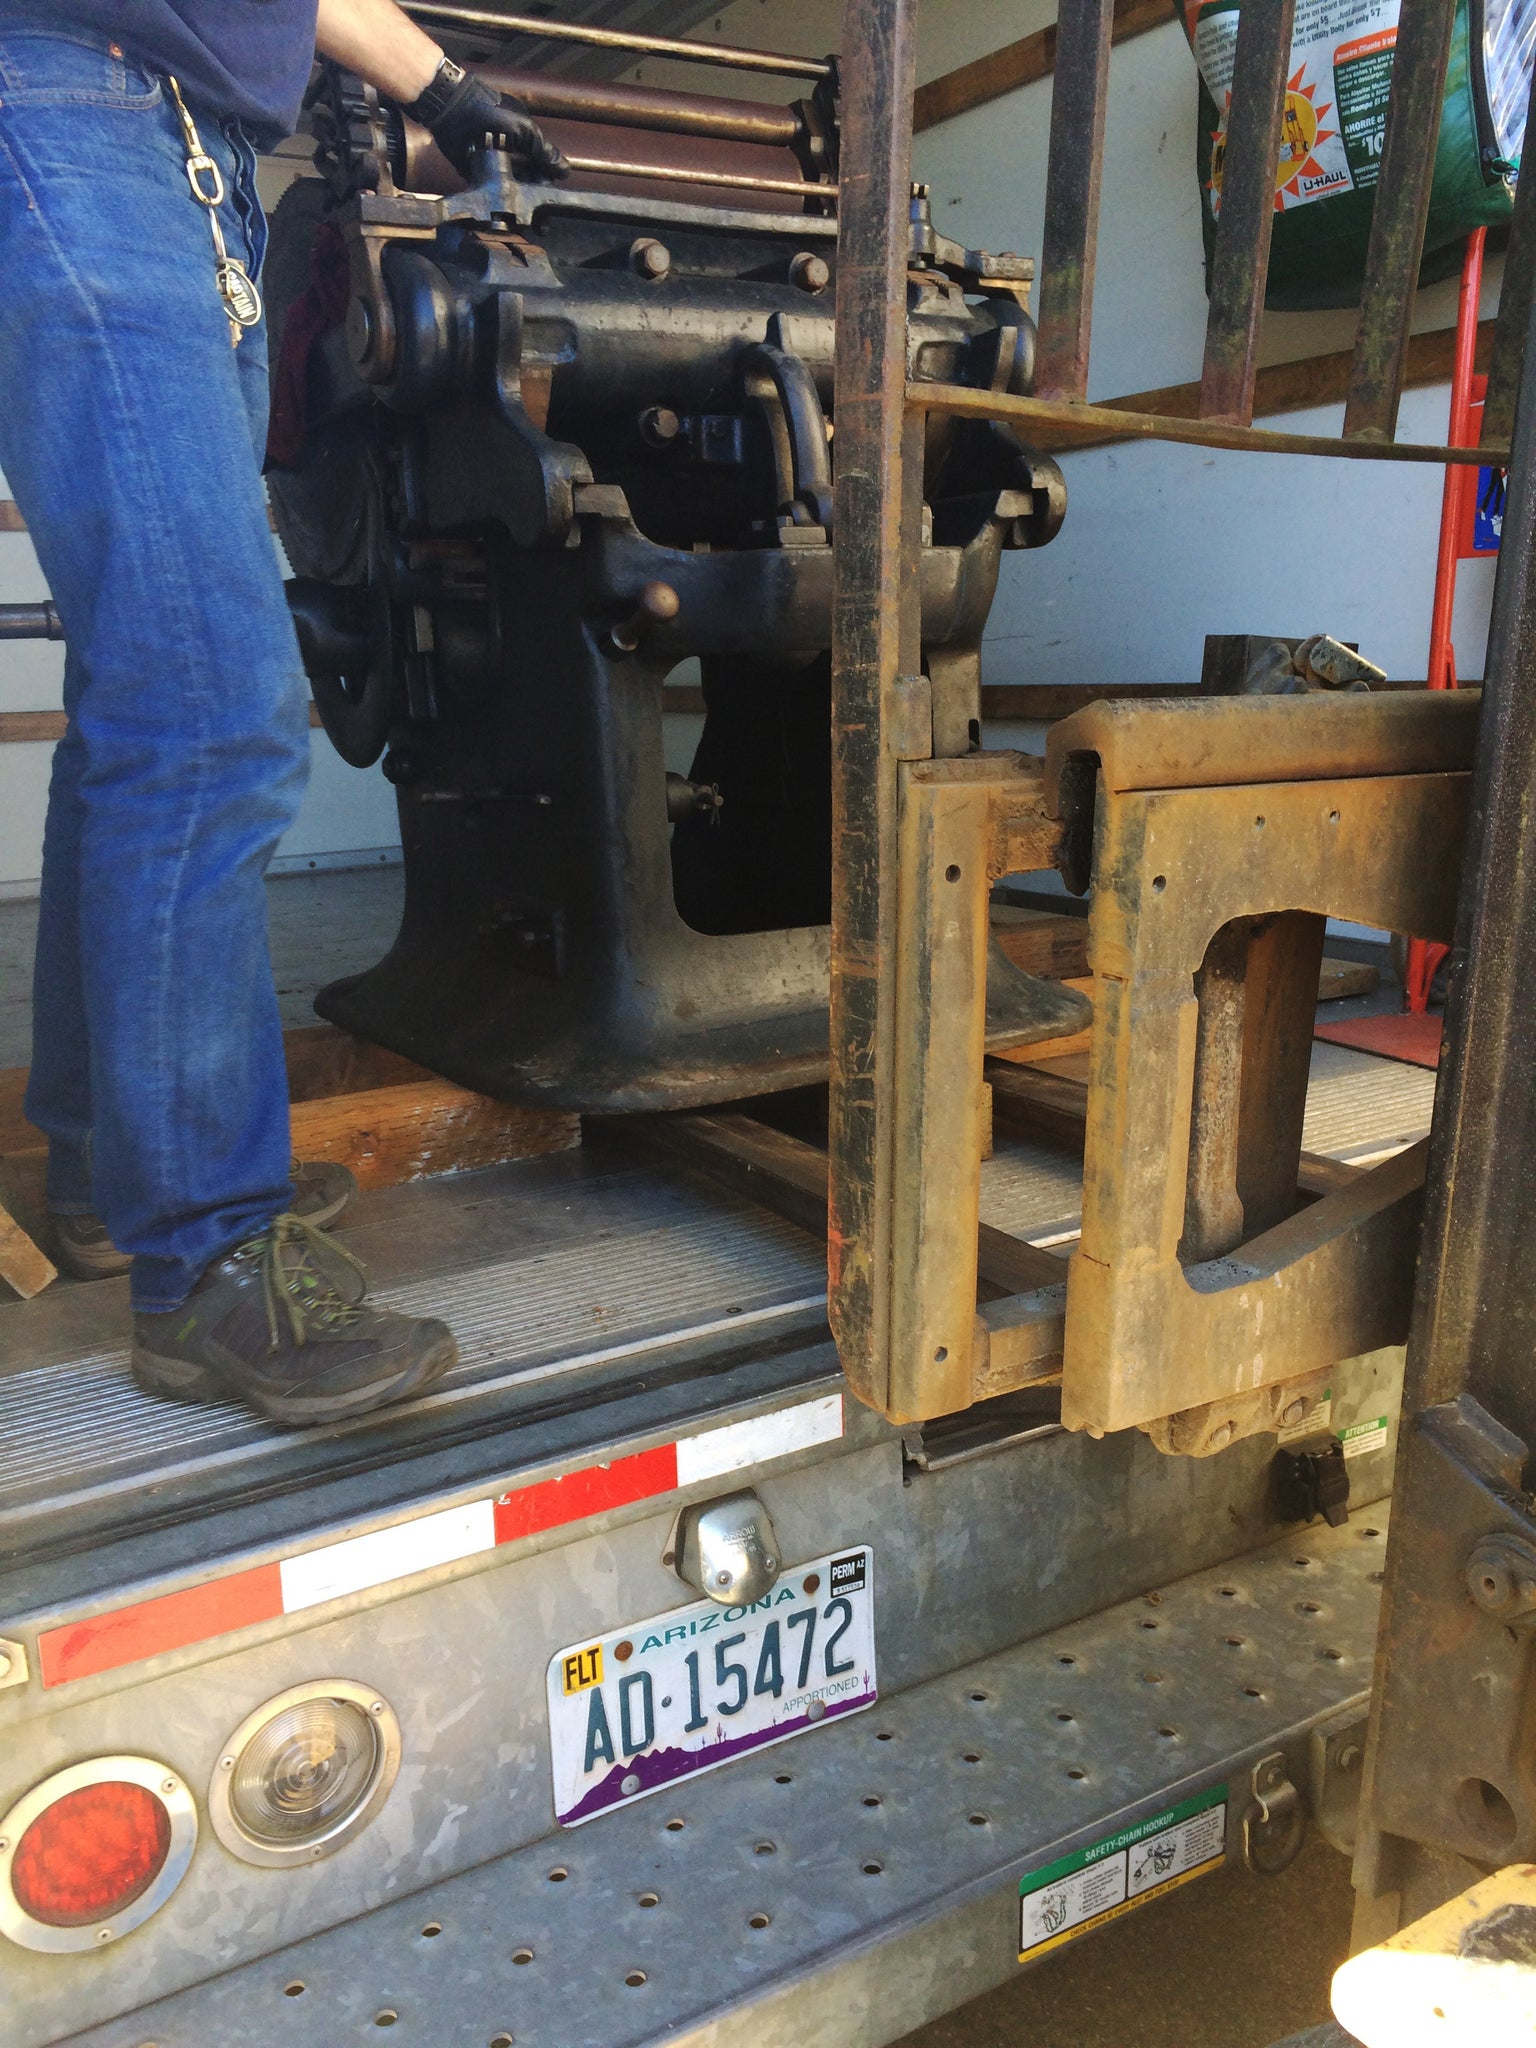 printing press at edge of back of truck with forklift